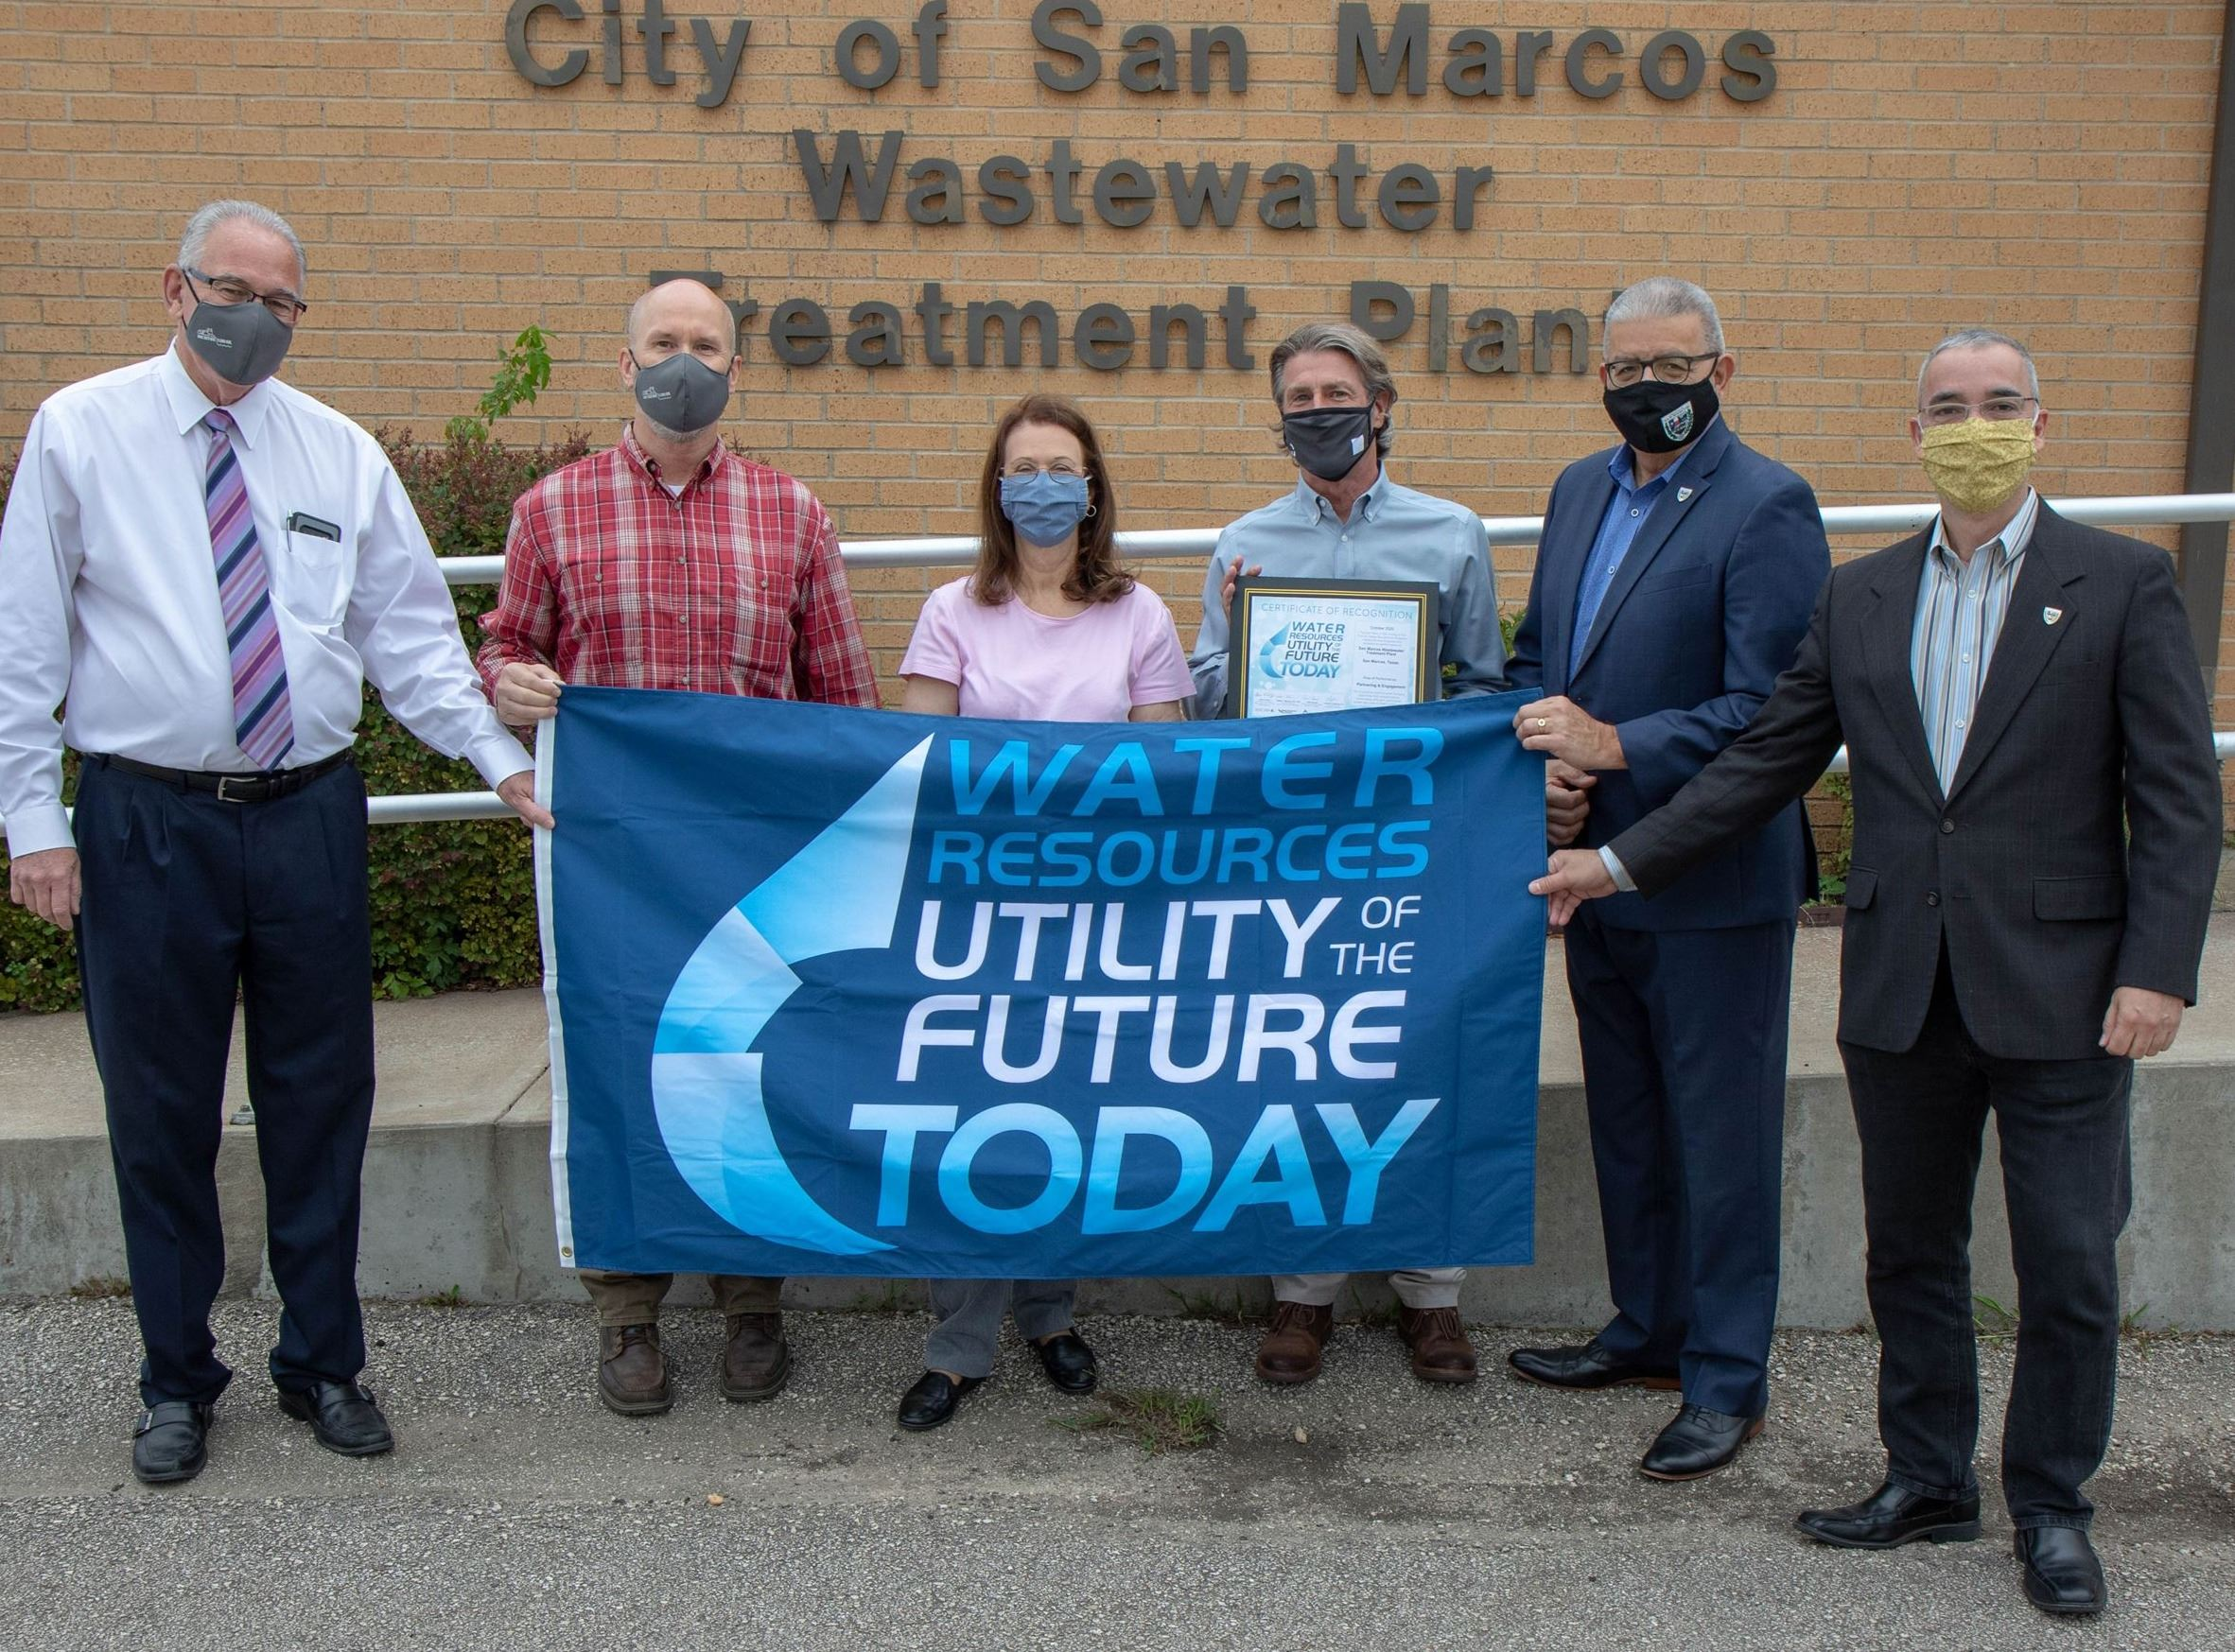 Photo of elected officials and WWTP representatives holding award banner in front of WWTP.